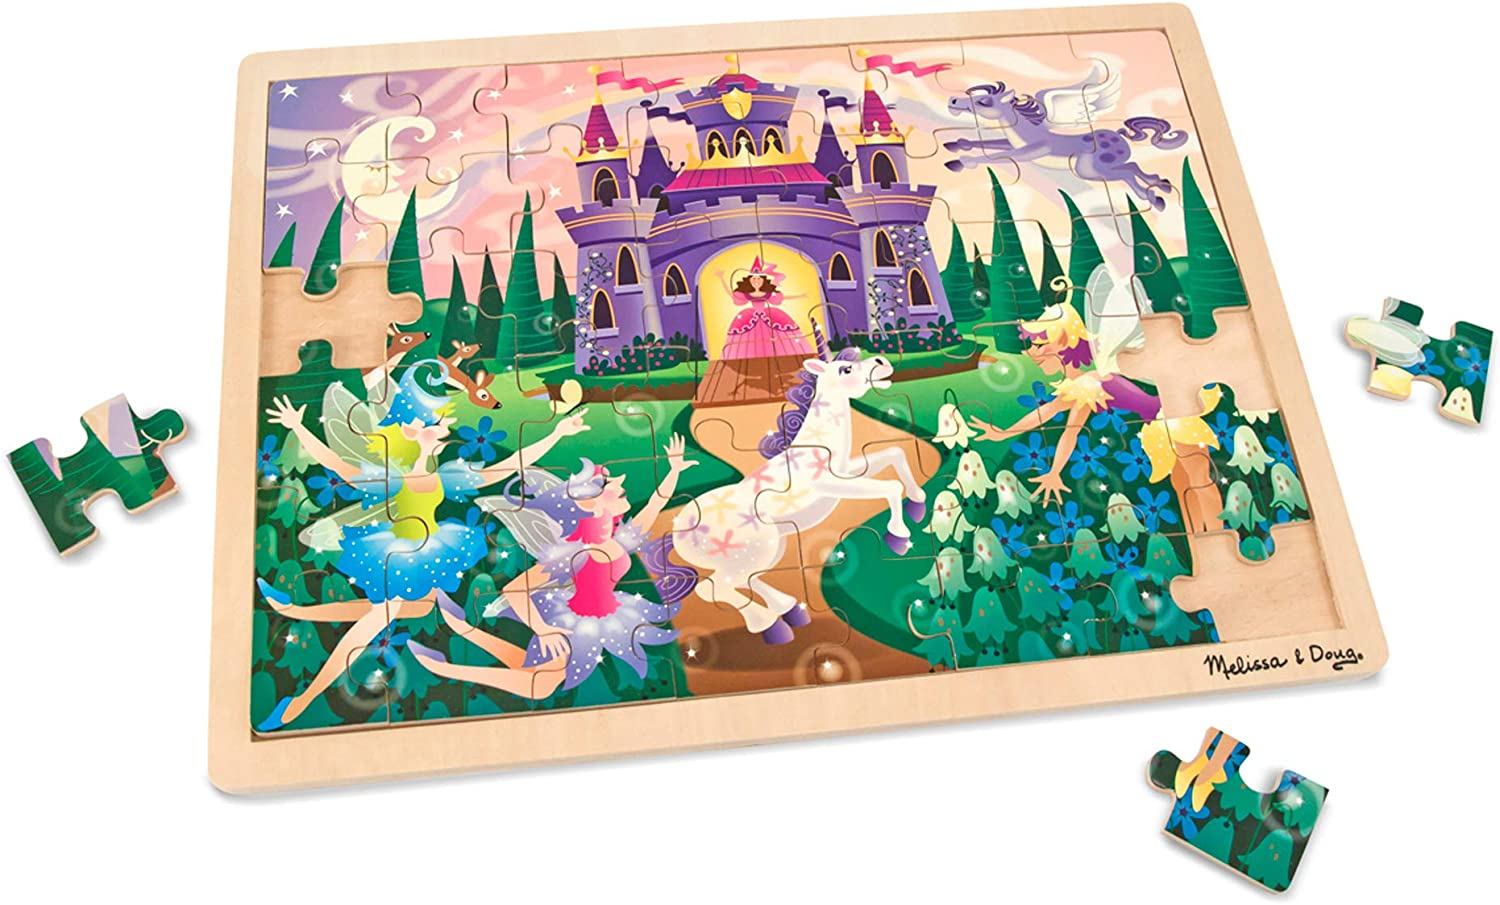 Melissa & Doug 48pc Wooden Jigsaw Puzzle - Fairy Fantasy